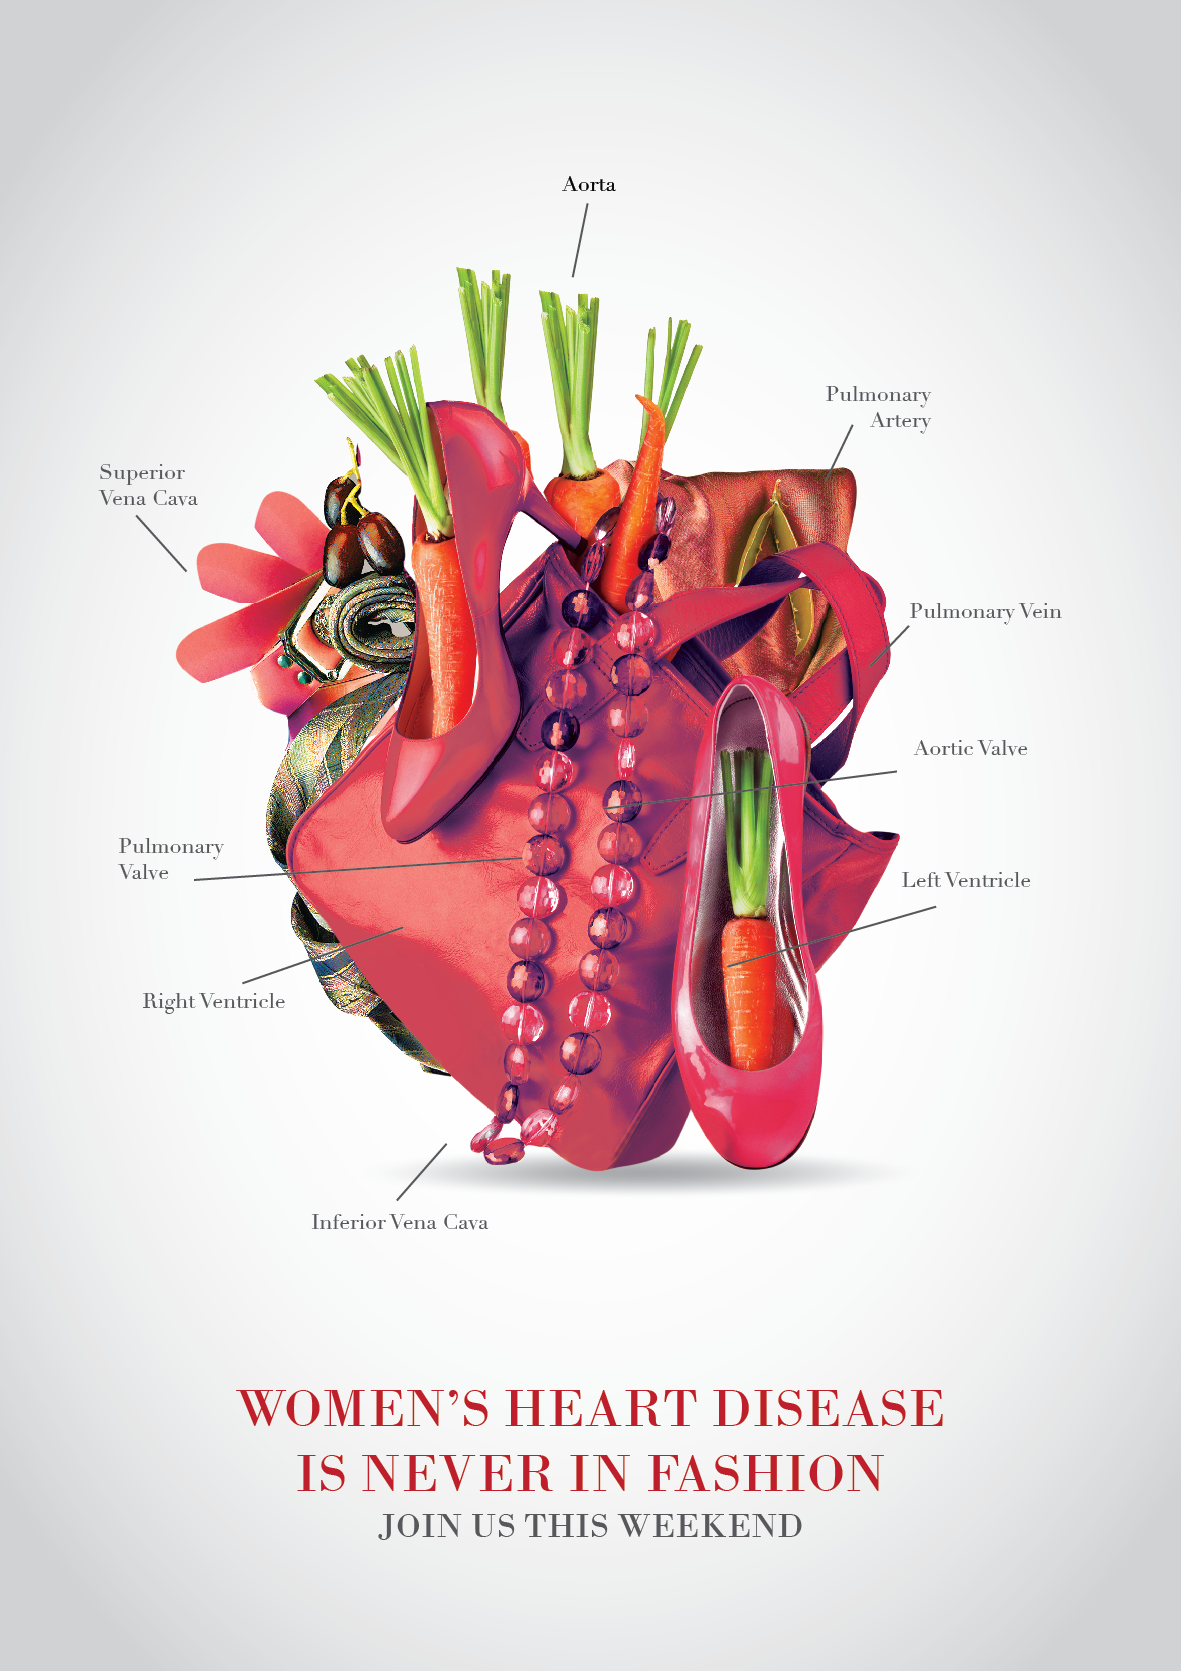 Women's Heart Disease Campaign